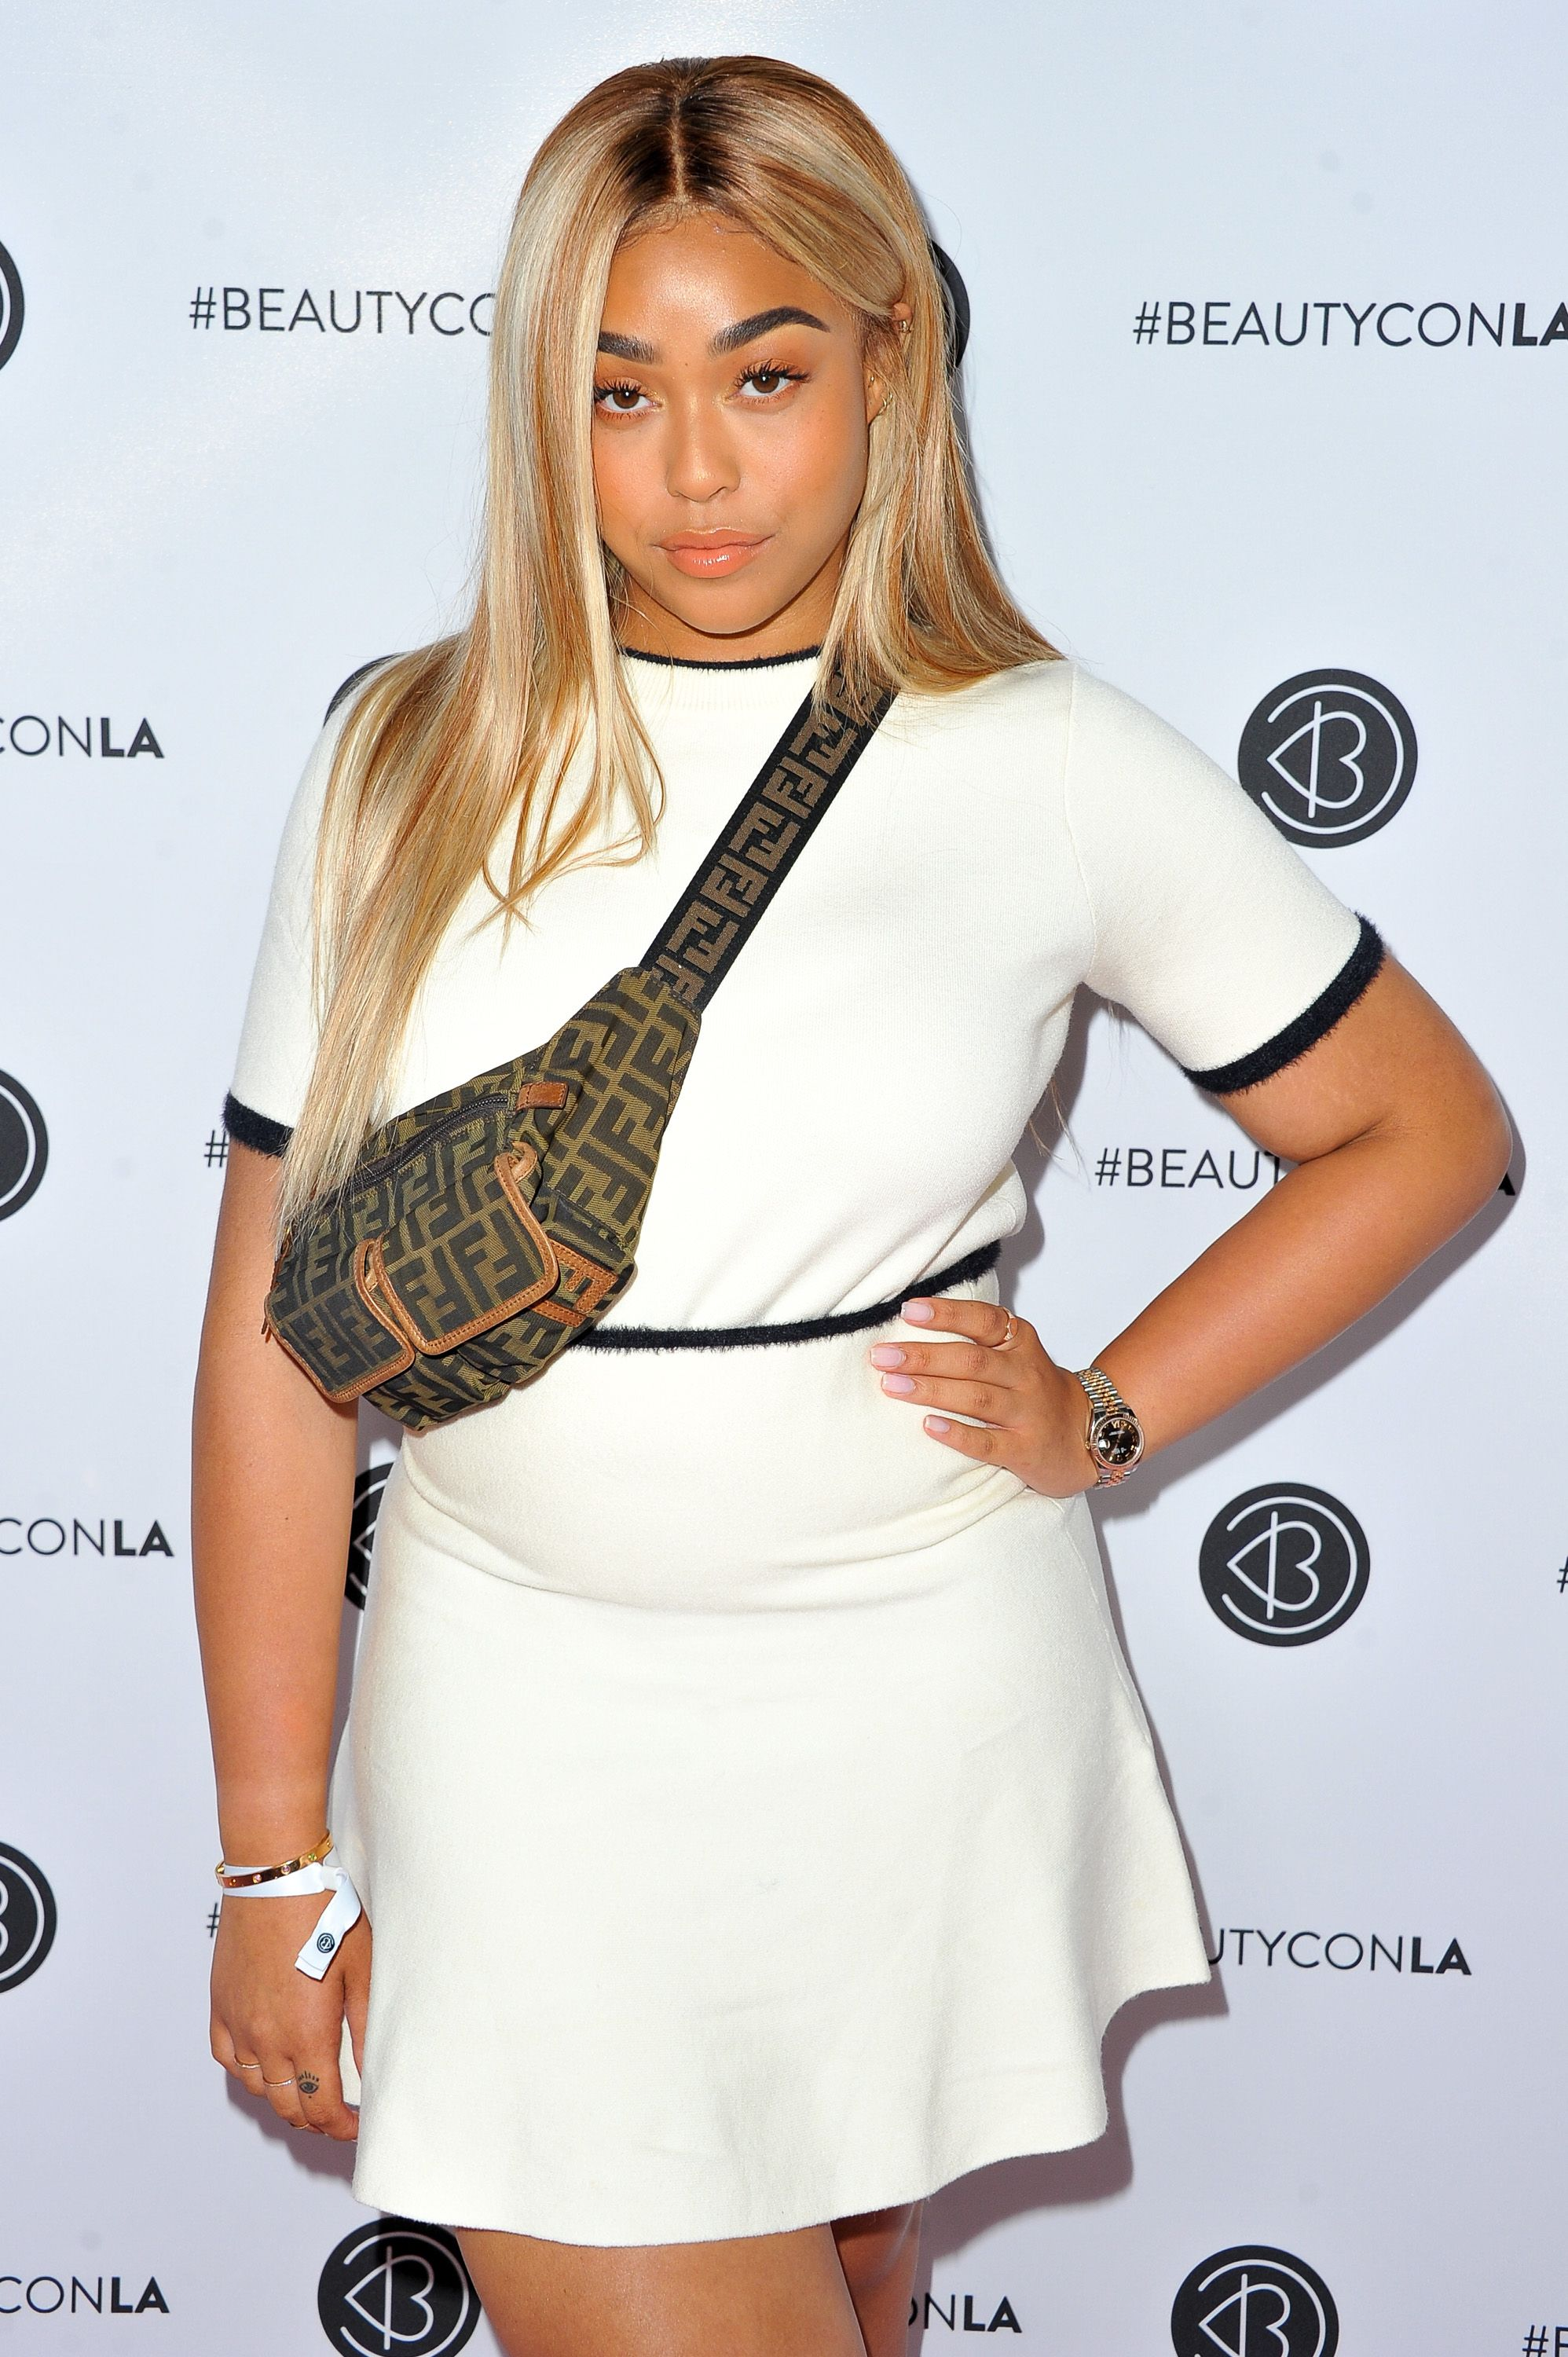 10 Celebrities Who Make Us Want to Go Blonde - Celebs With